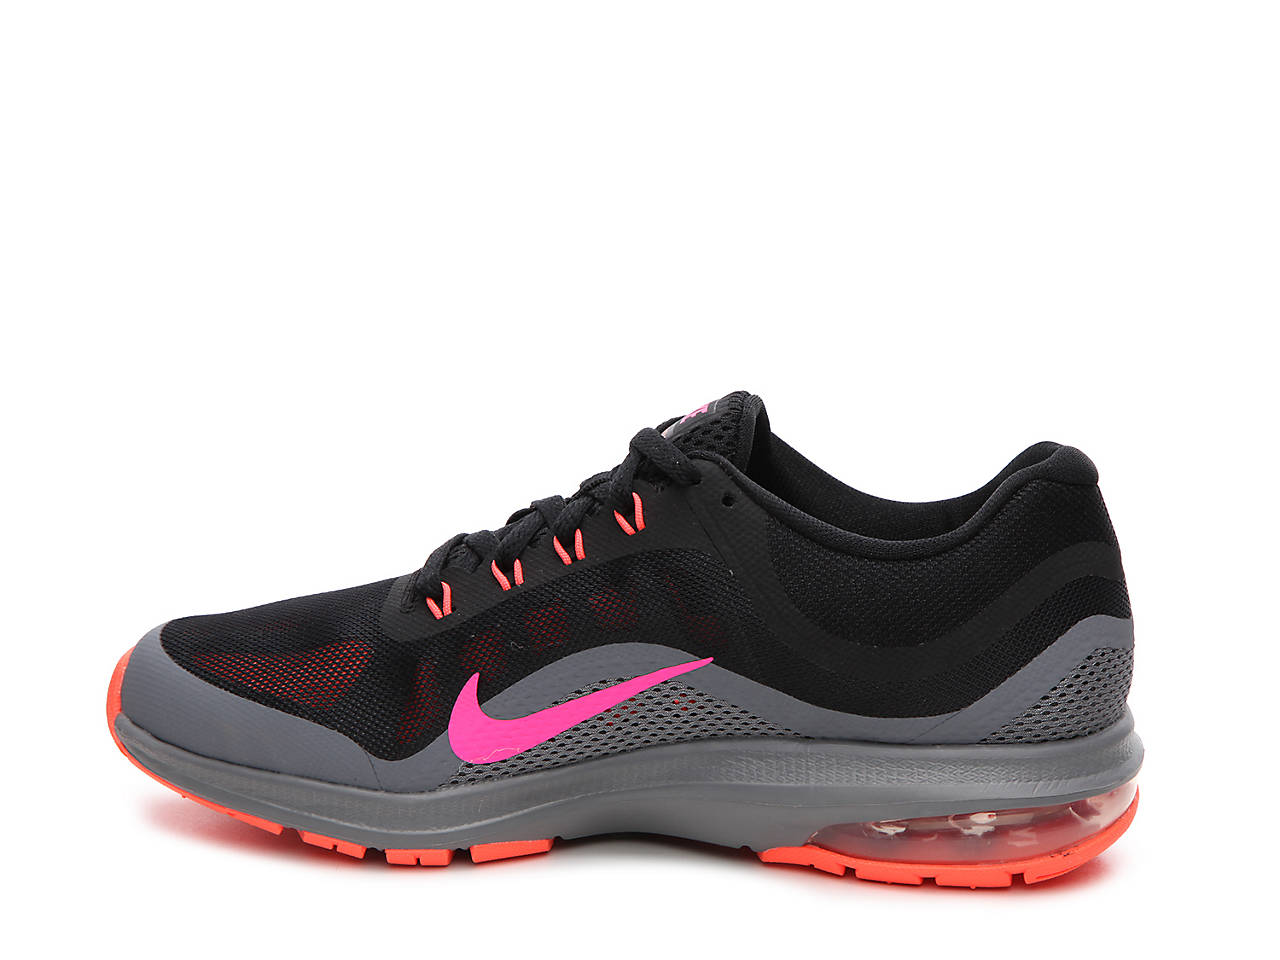 designer fashion 356e0 fecdf Air Max Dynasty 2 Performance Running Shoe - Women s. next